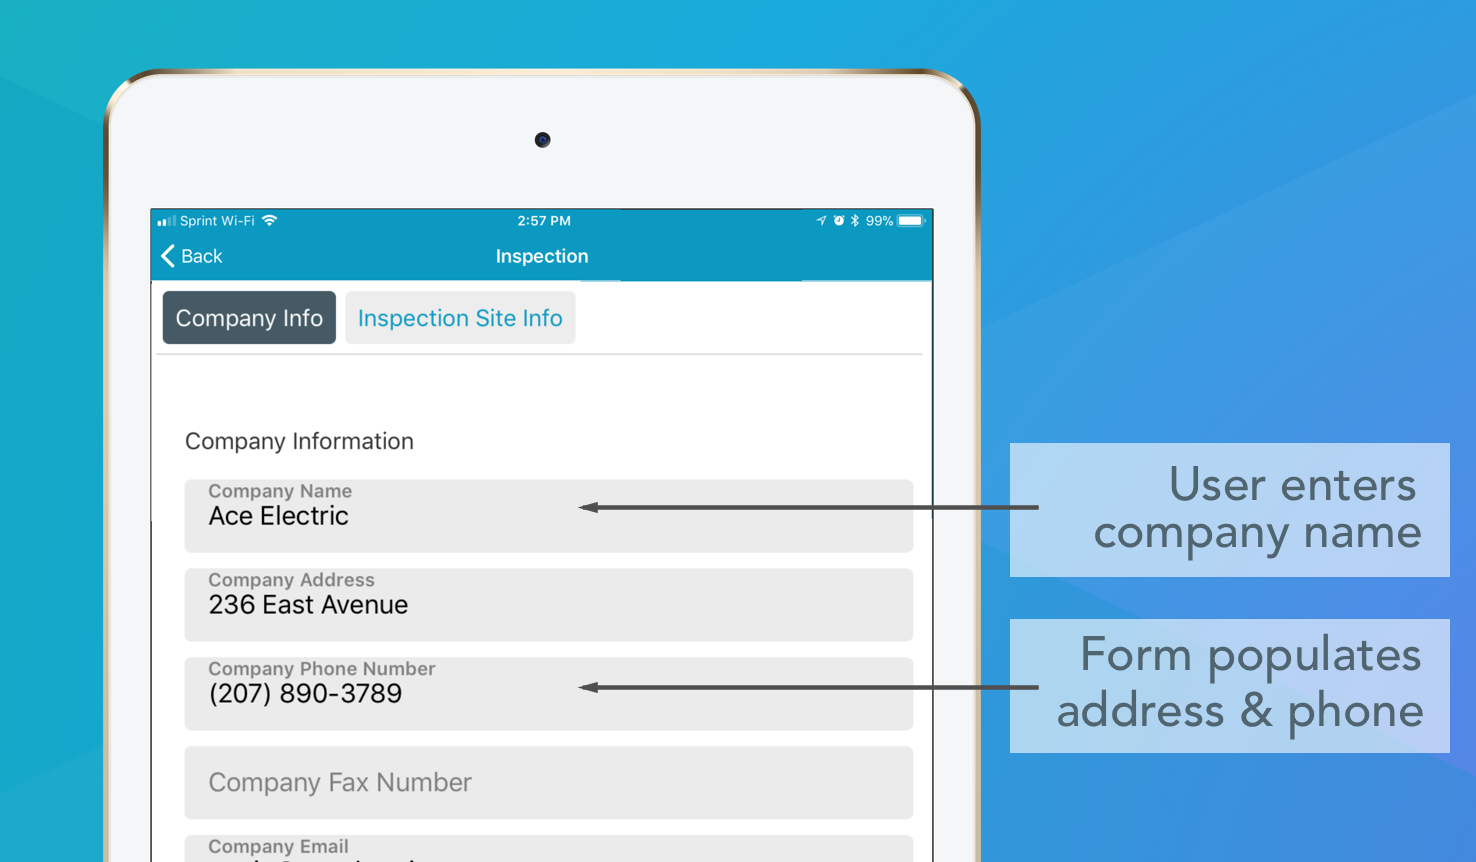 Conditional logic allows your mobile forms to populate corresponding fields.